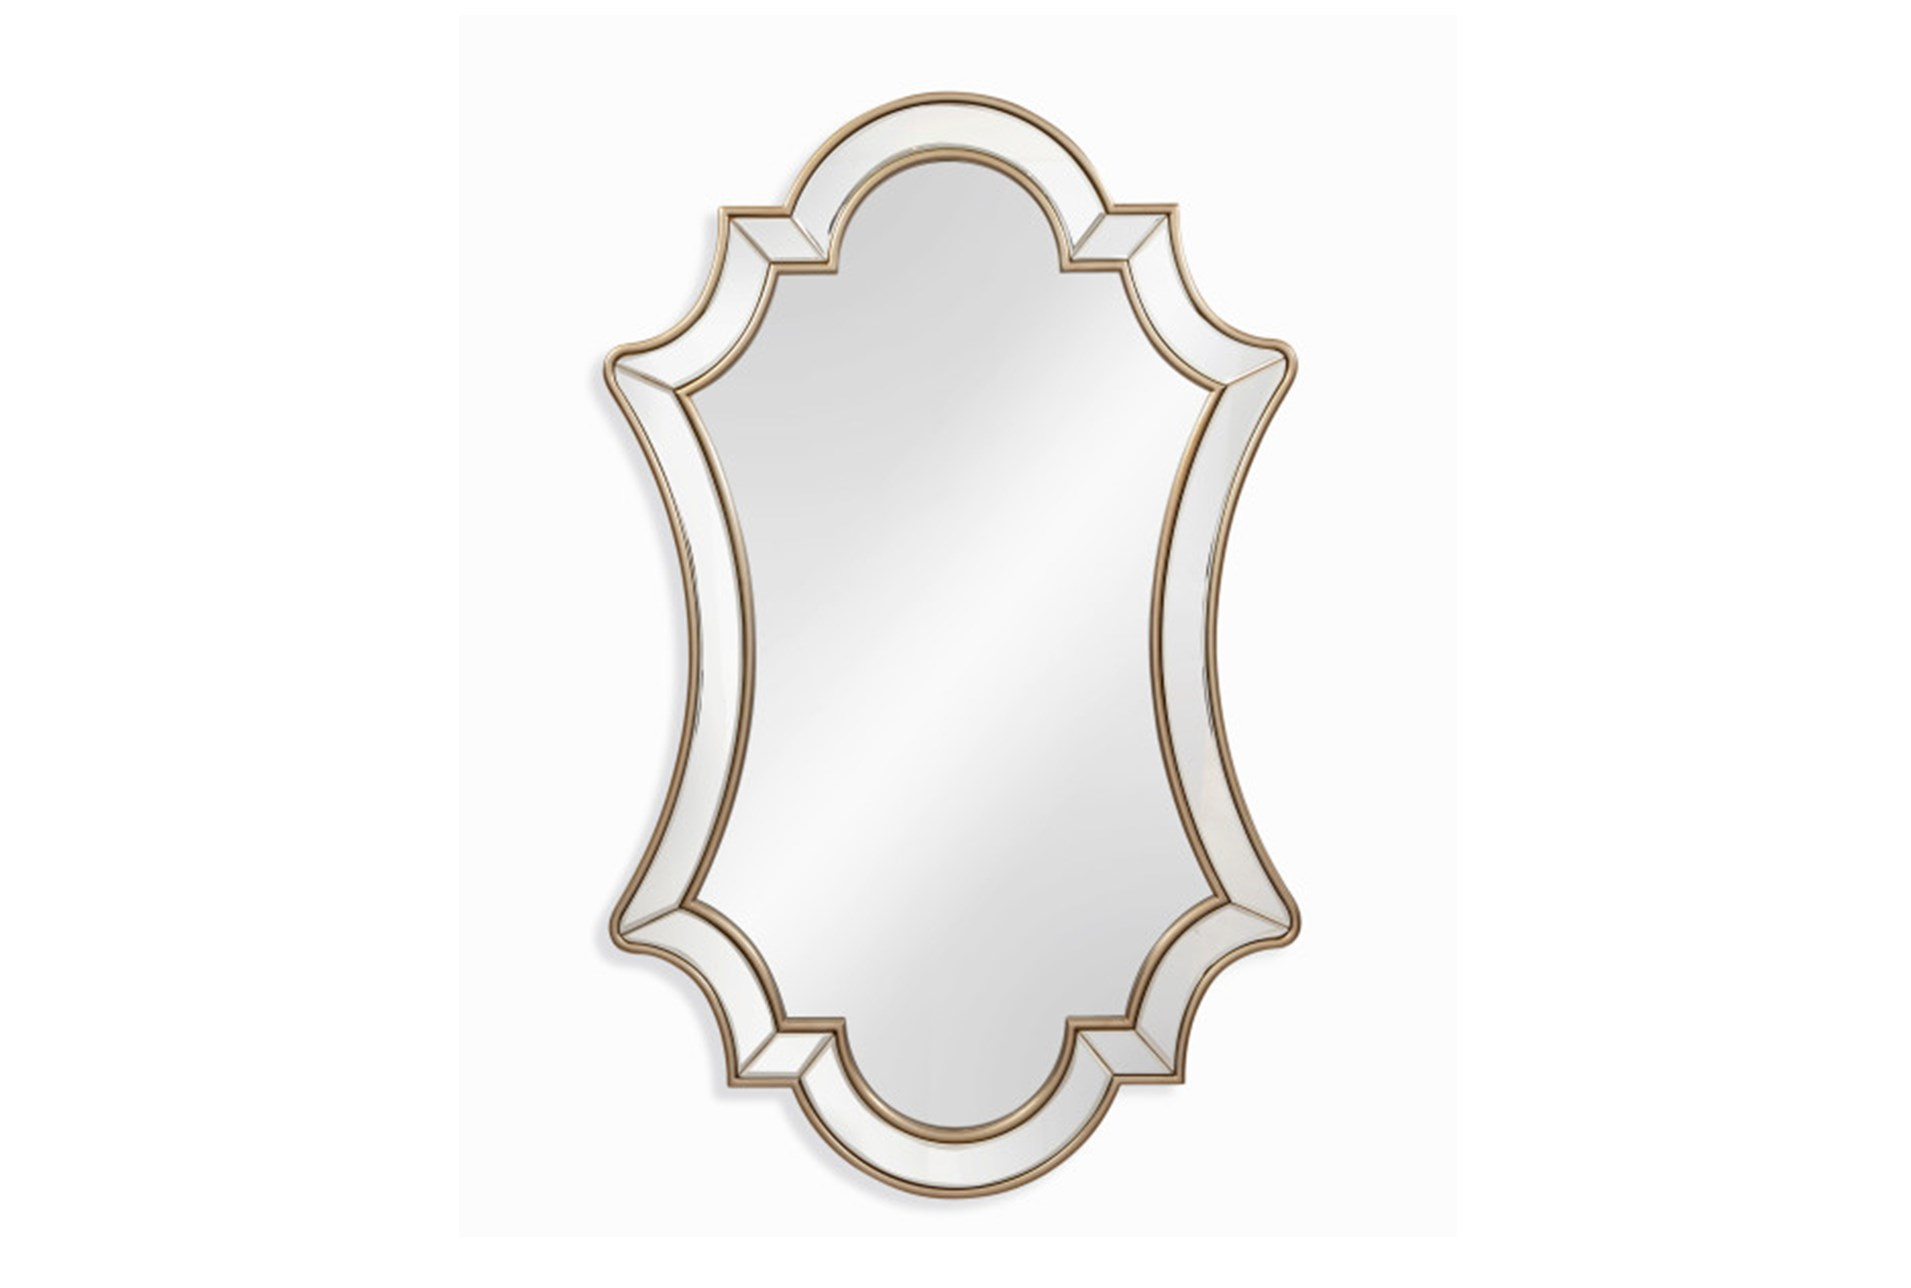 Mirror Gold Wonderland 30x48 Qty 1 Has Been Successfully Added To Your Cart